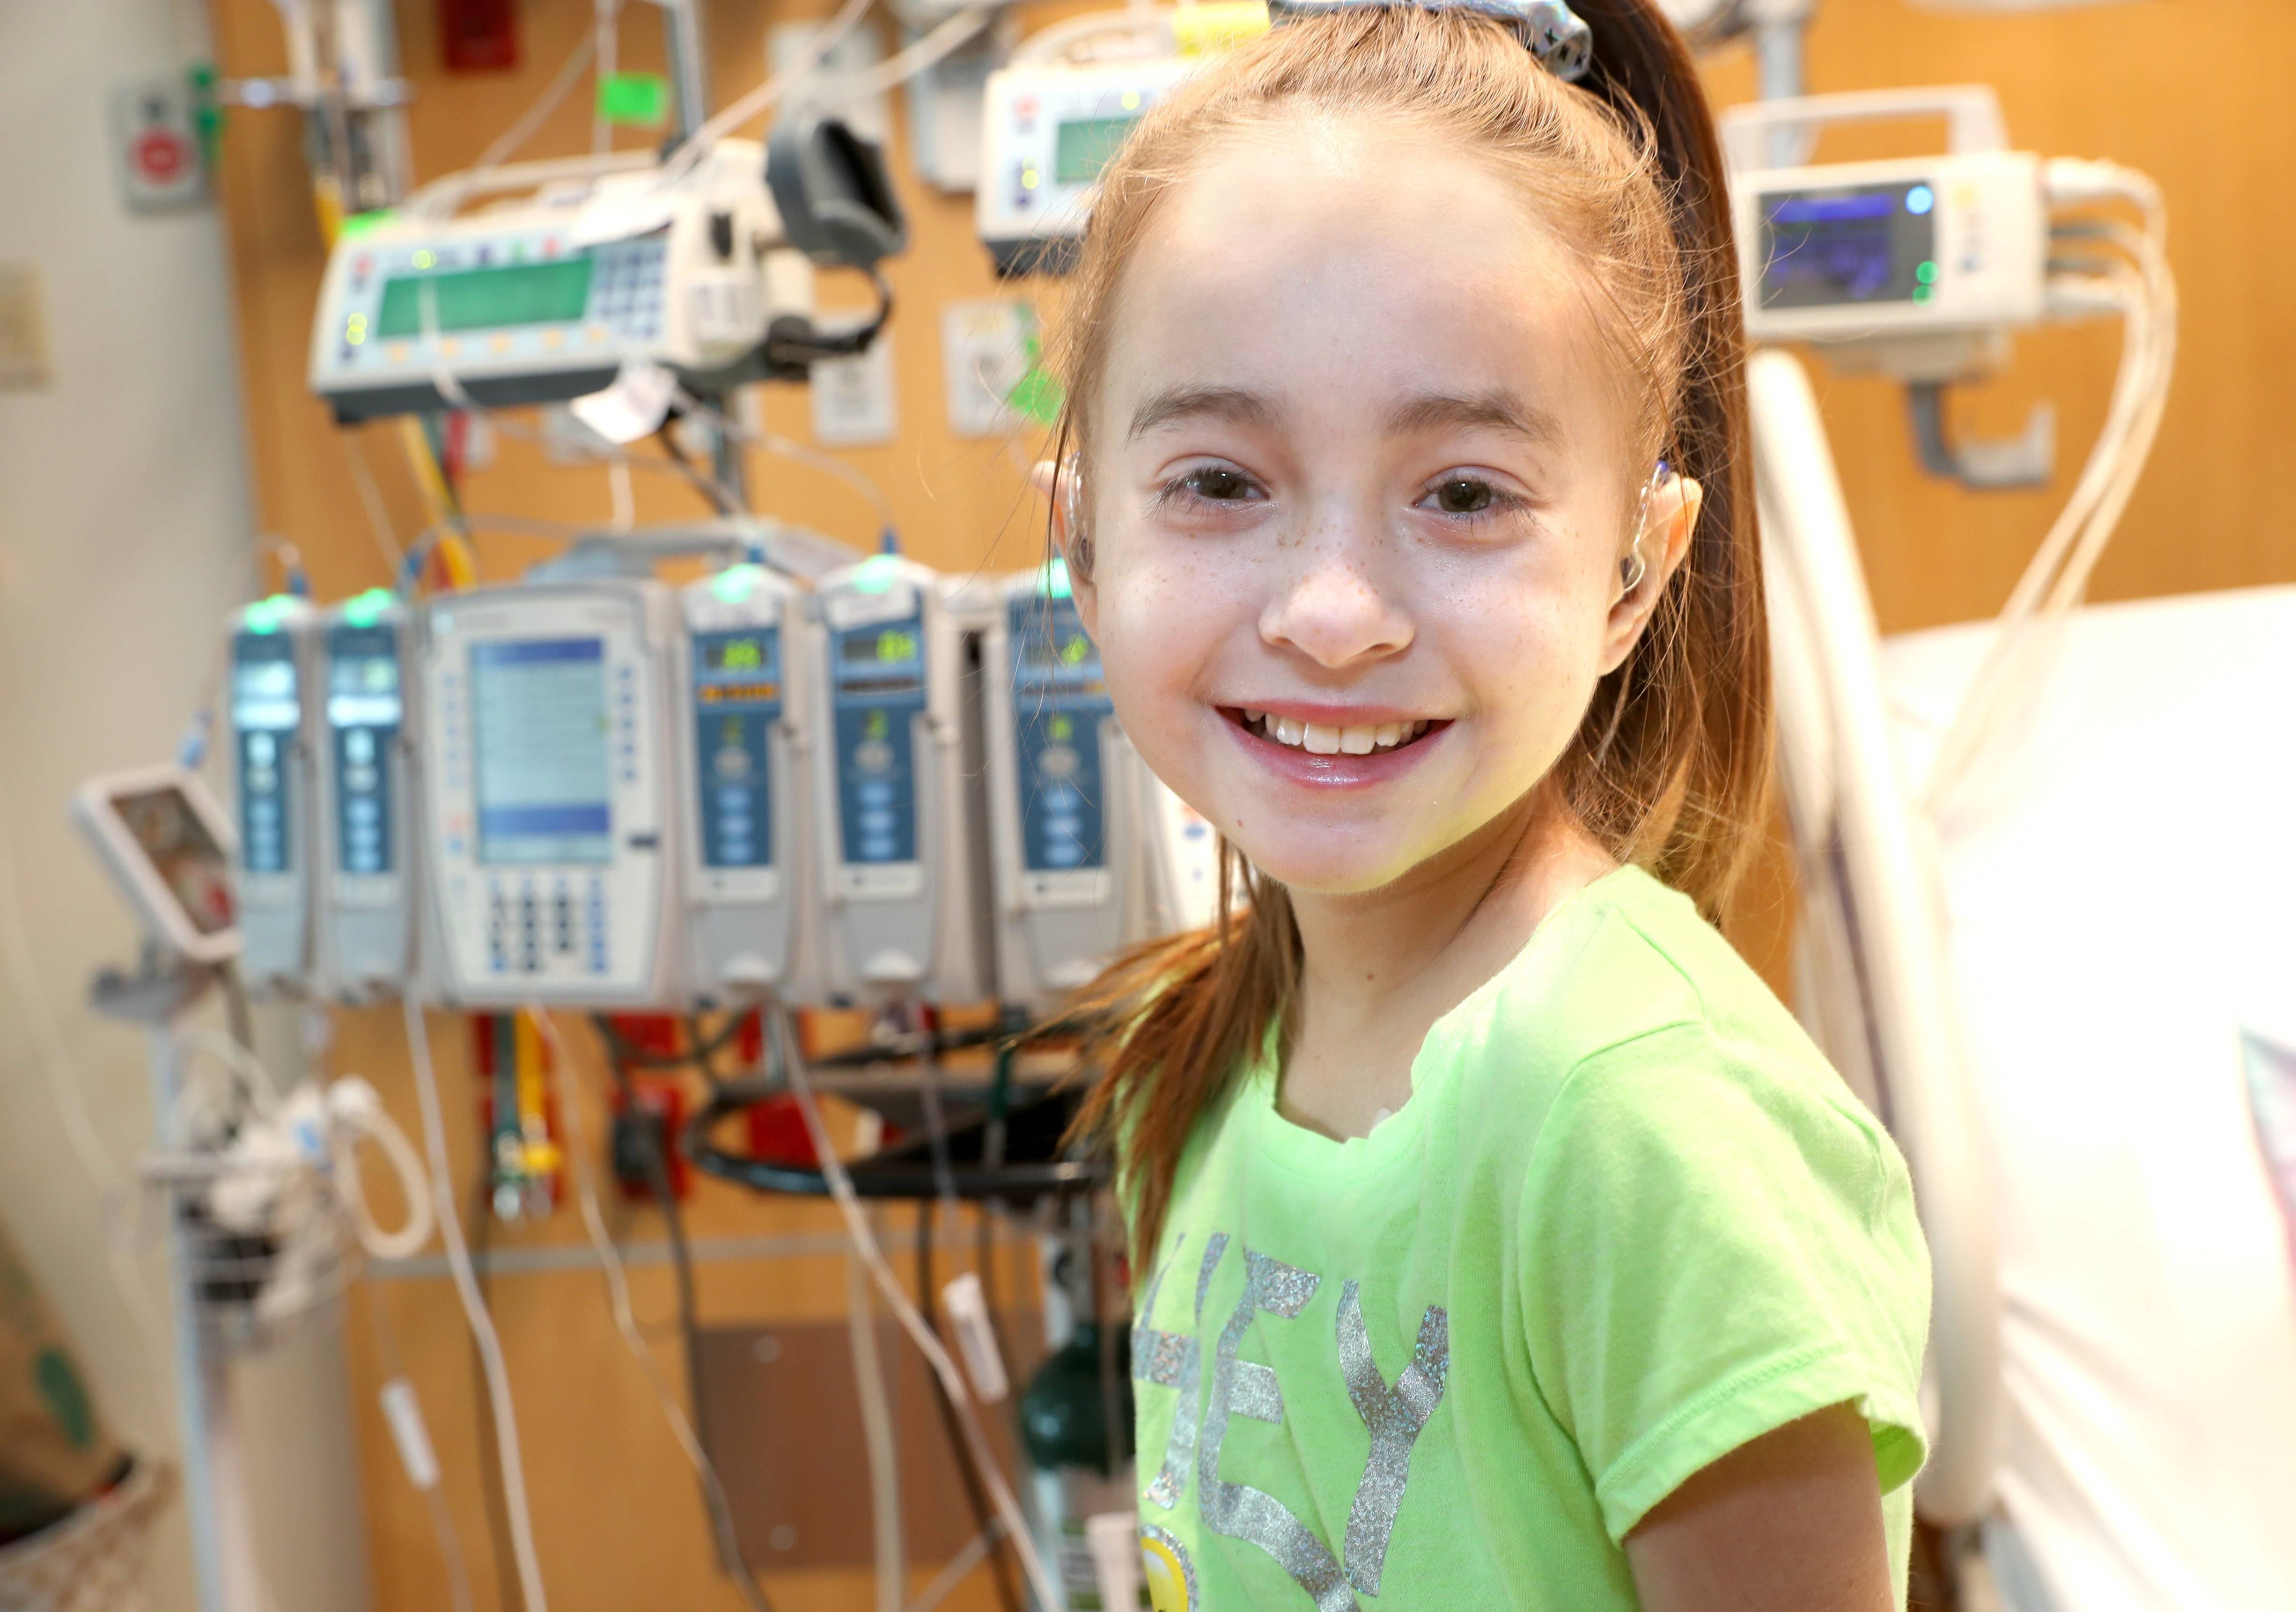 Sofia Sanchez of Downers Grove has spent the last several weeks waiting for a new heart at Ann & Robert H. Lurie Children's Hospital. She has two wishes for her 11th birthday Saturday: To get her new heart and to meet her idol, Drake.